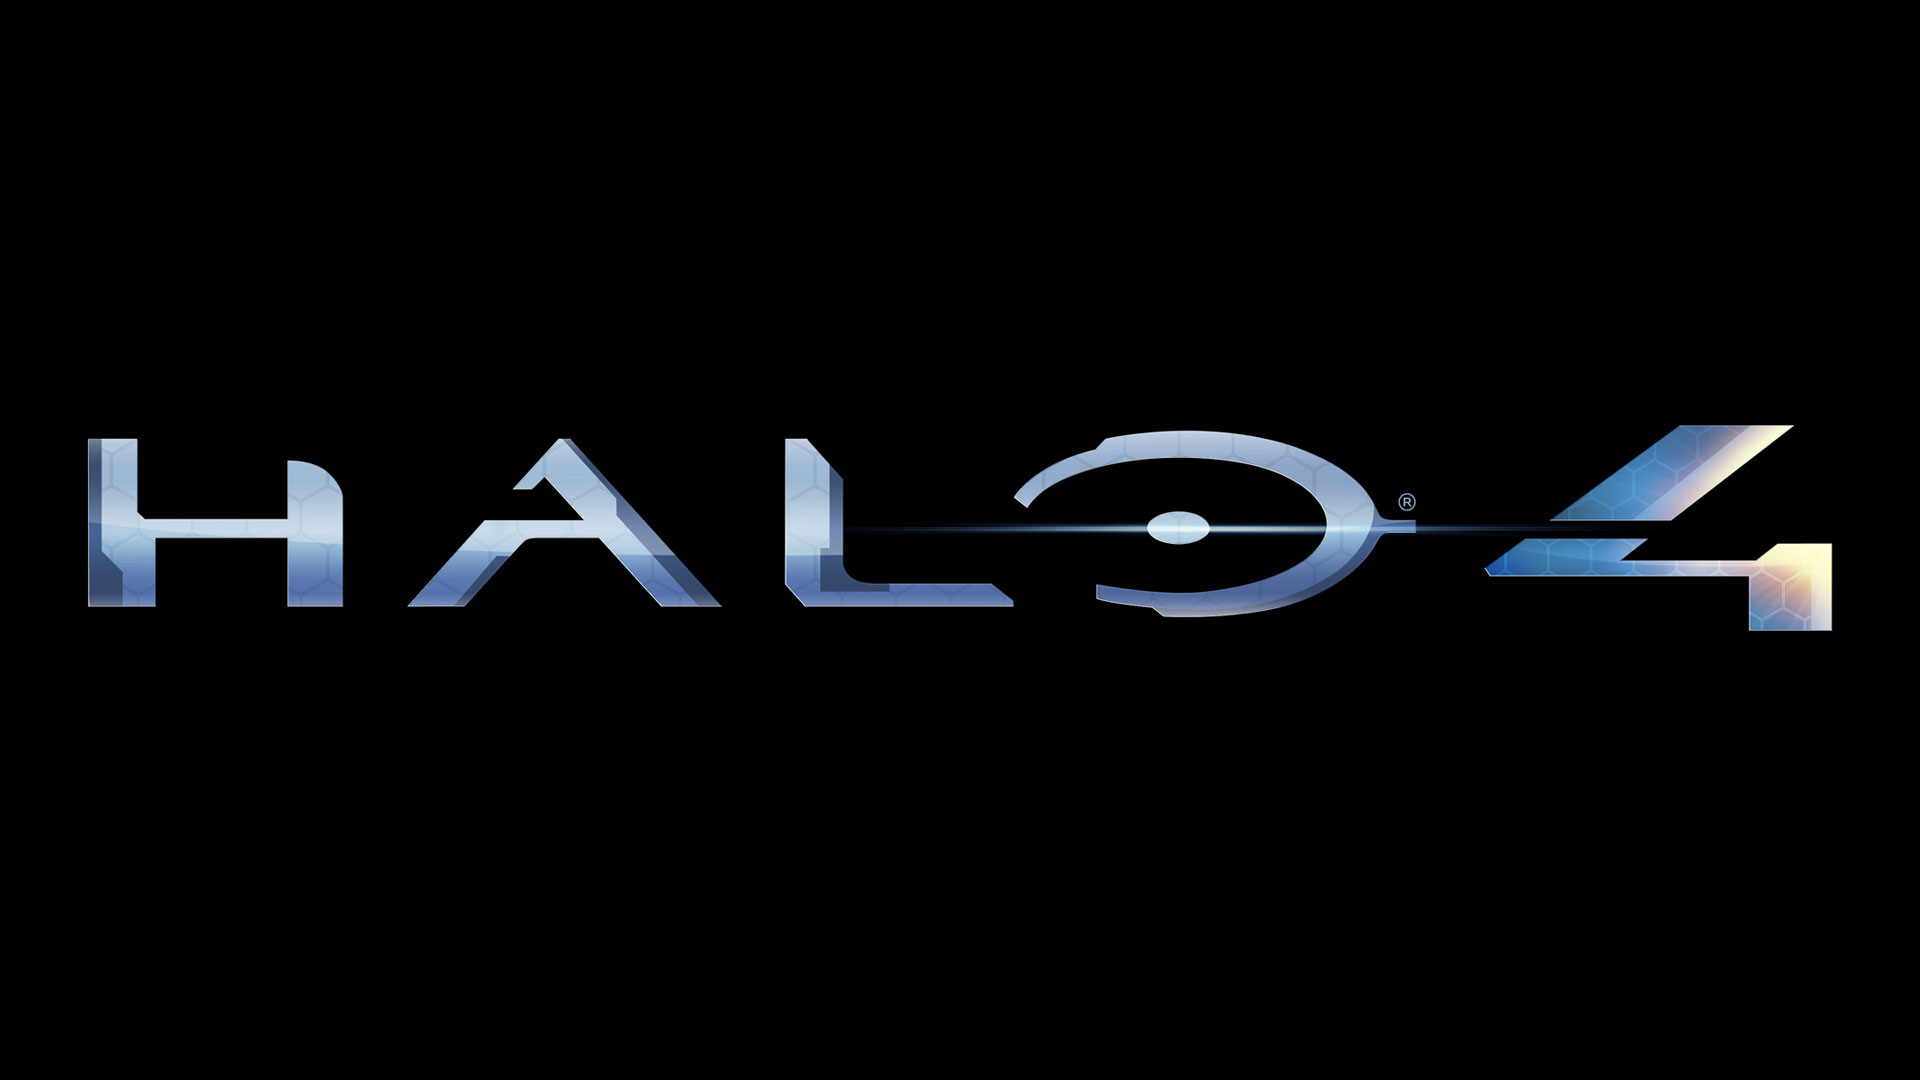 Halo 4 Wallpapers in HD Page 1 1920x1080